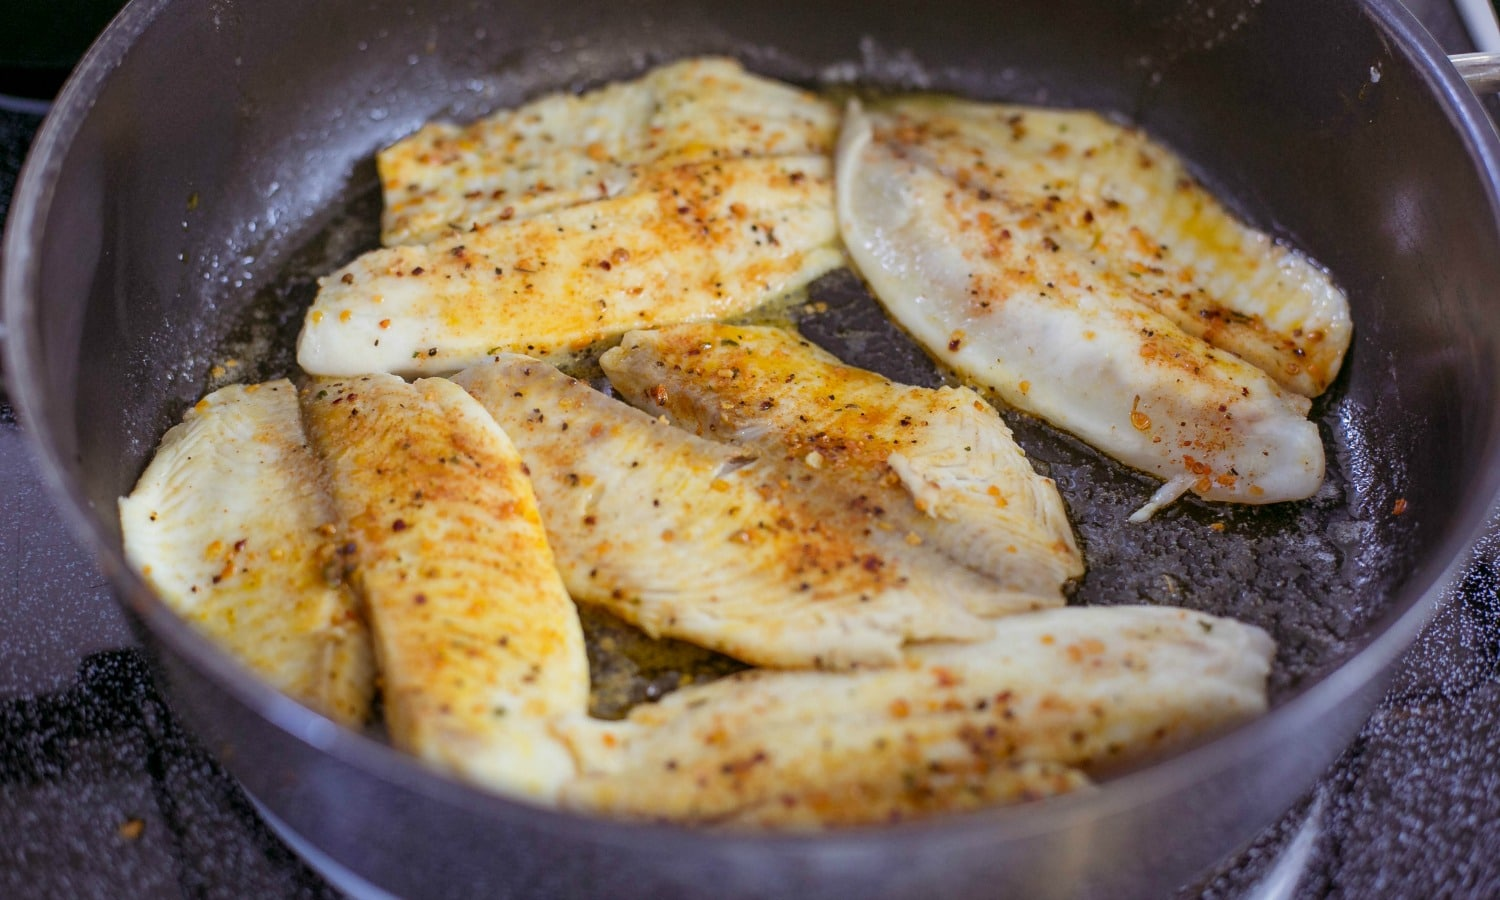 Pan fry the fish fillets with butter